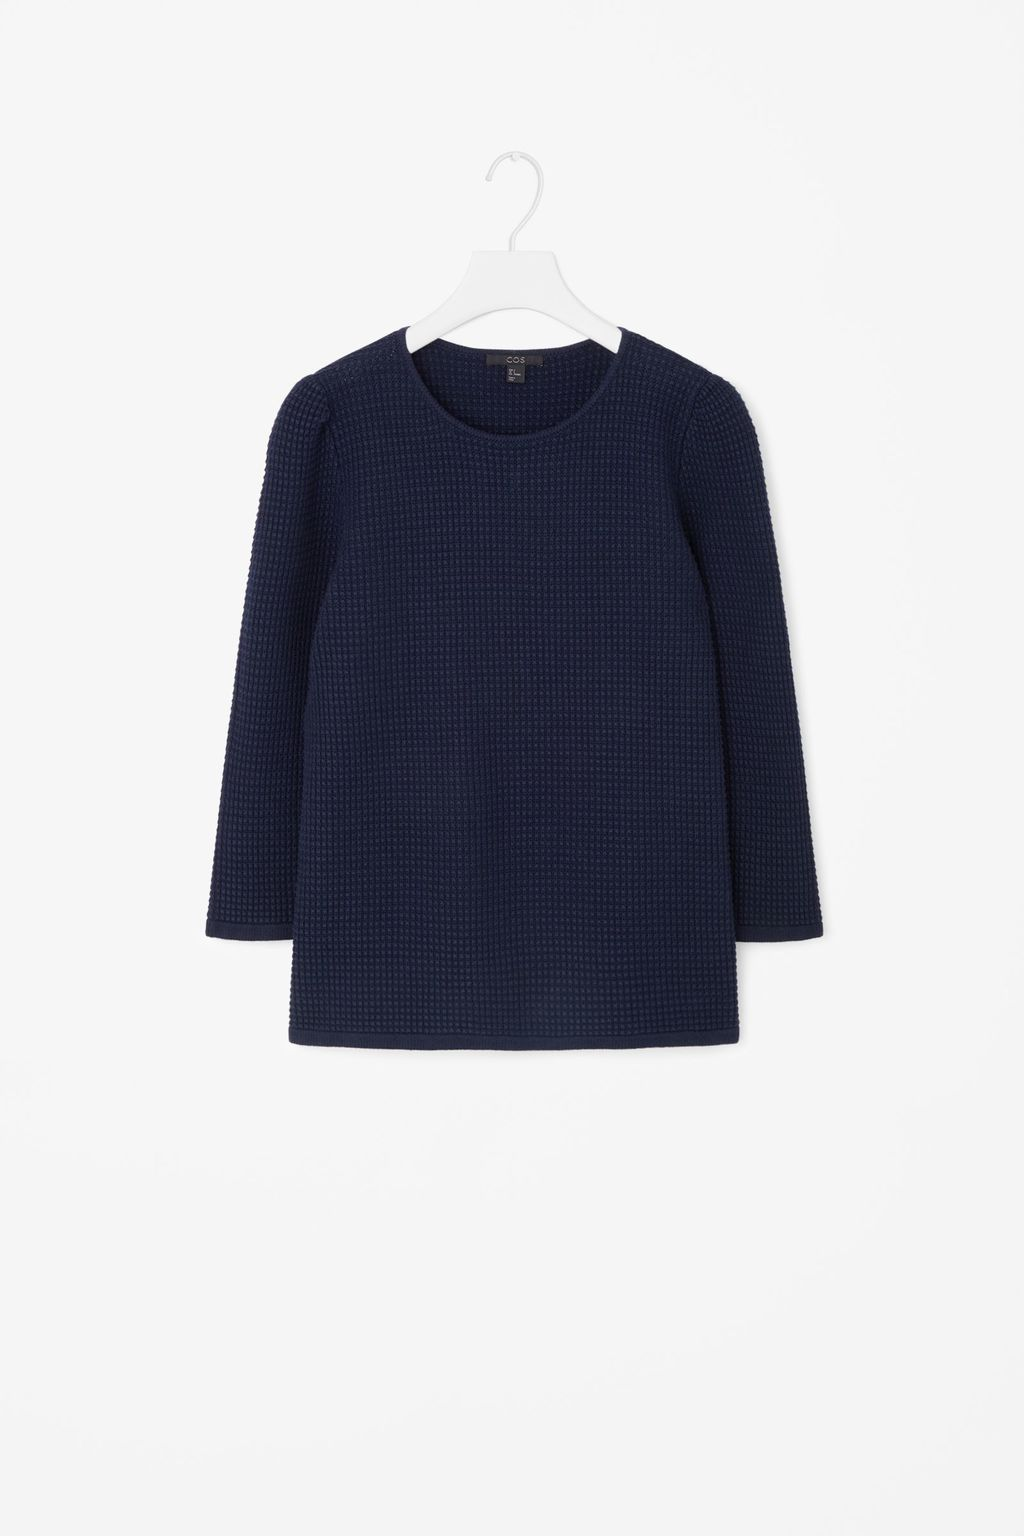 Raised Knit Jumper - pattern: plain; length: below the bottom; style: standard; predominant colour: navy; occasions: casual, creative work; fibres: cotton - 100%; fit: loose; neckline: crew; sleeve length: 3/4 length; sleeve style: standard; texture group: knits/crochet; pattern type: knitted - other; season: a/w 2015; wardrobe: basic